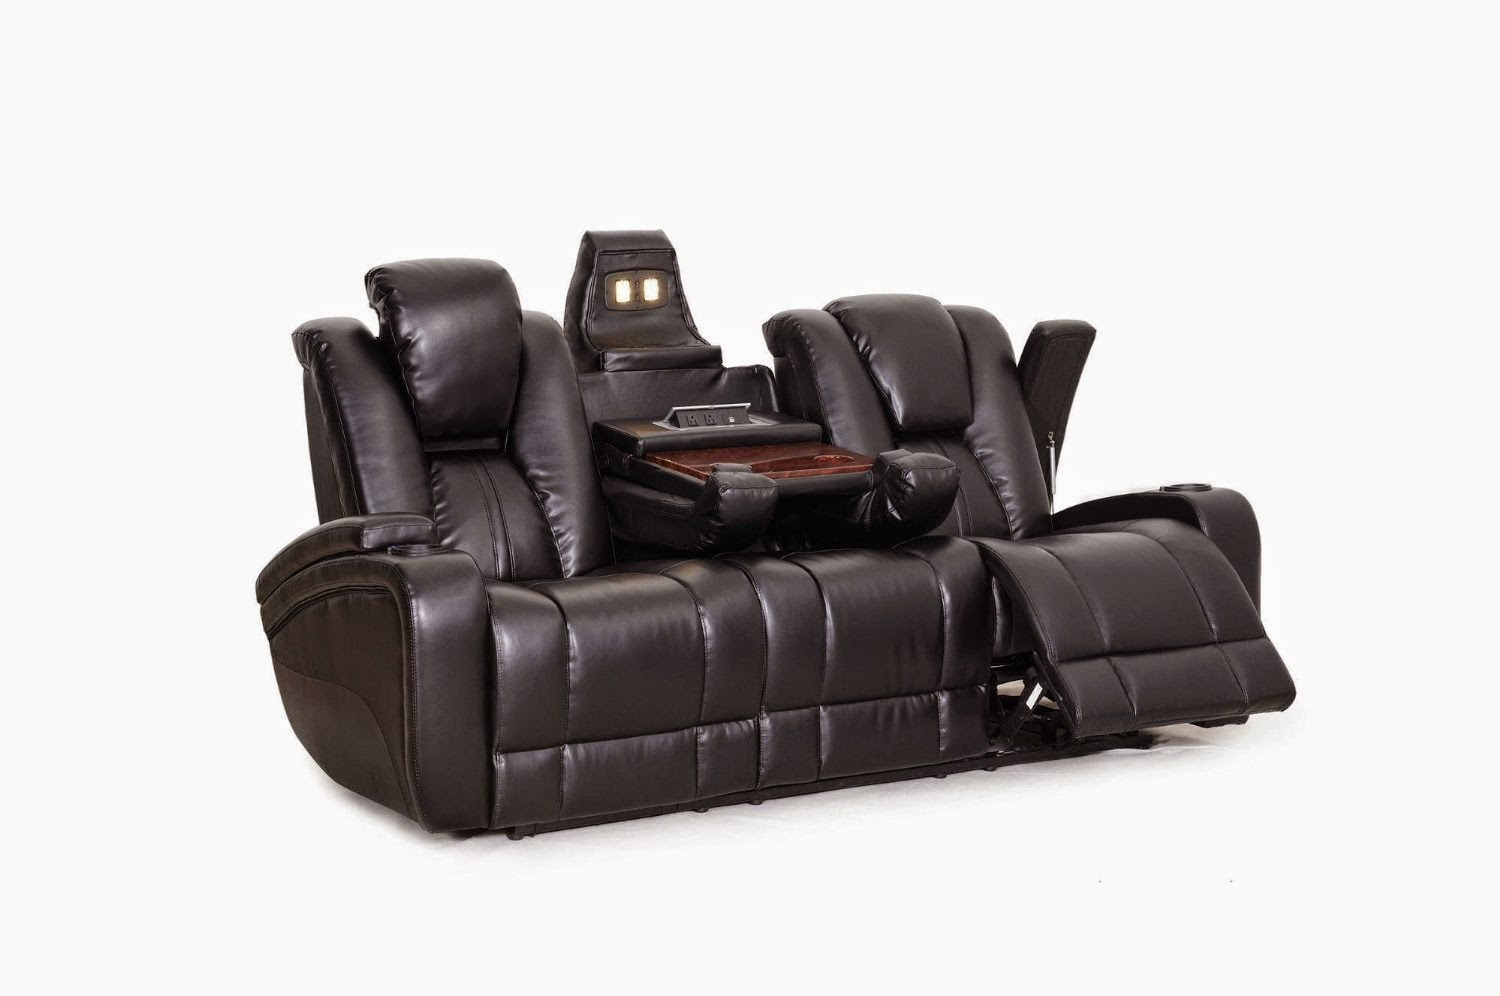 Charmant Power Reclining Leather Sofa Reviews